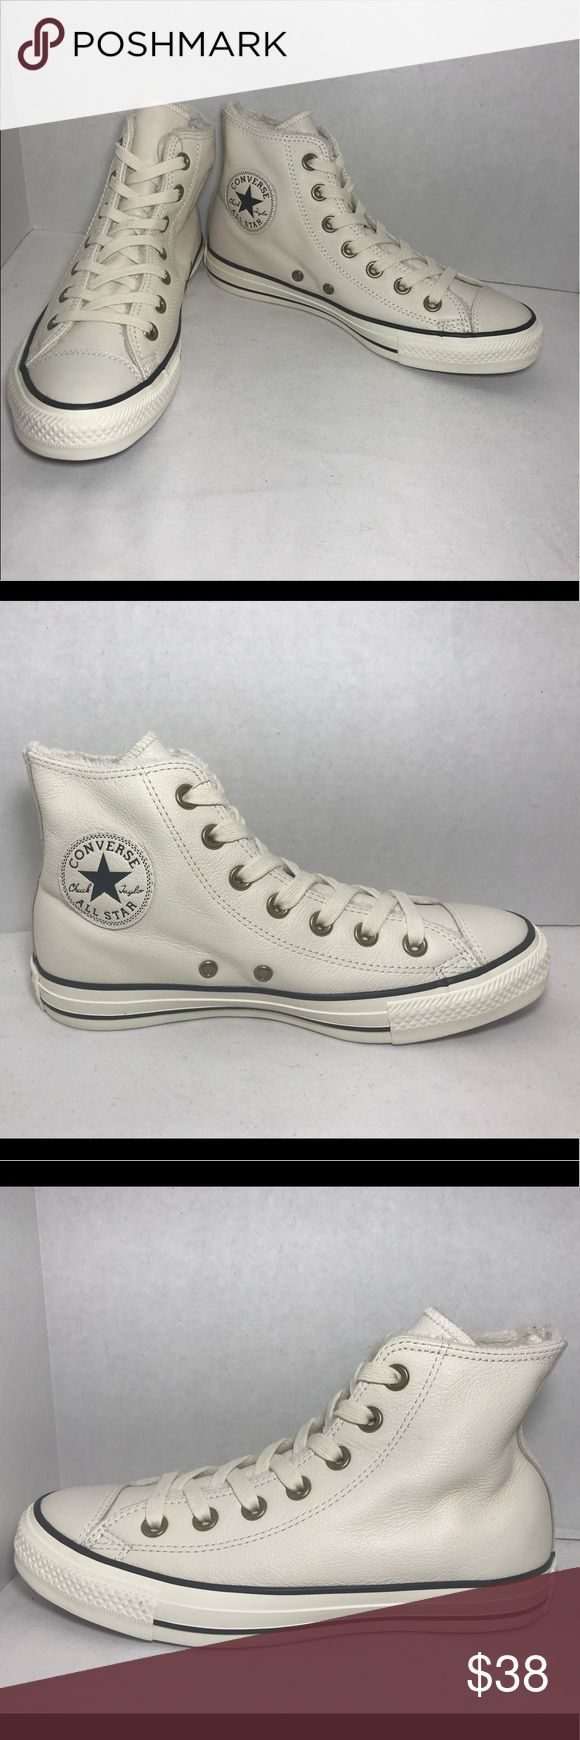 Converse Chuck Taylor Leather All Star Sneakers These woman Converse sneakers have a Leather high top design with a super soft interior.  These shoes are new from store display however they have been used for sample and display purposes and may have slight scuffs on shoes hardly seen. They are original brand shoes and same shoes as pictures shown. Converse Shoes Sneakers